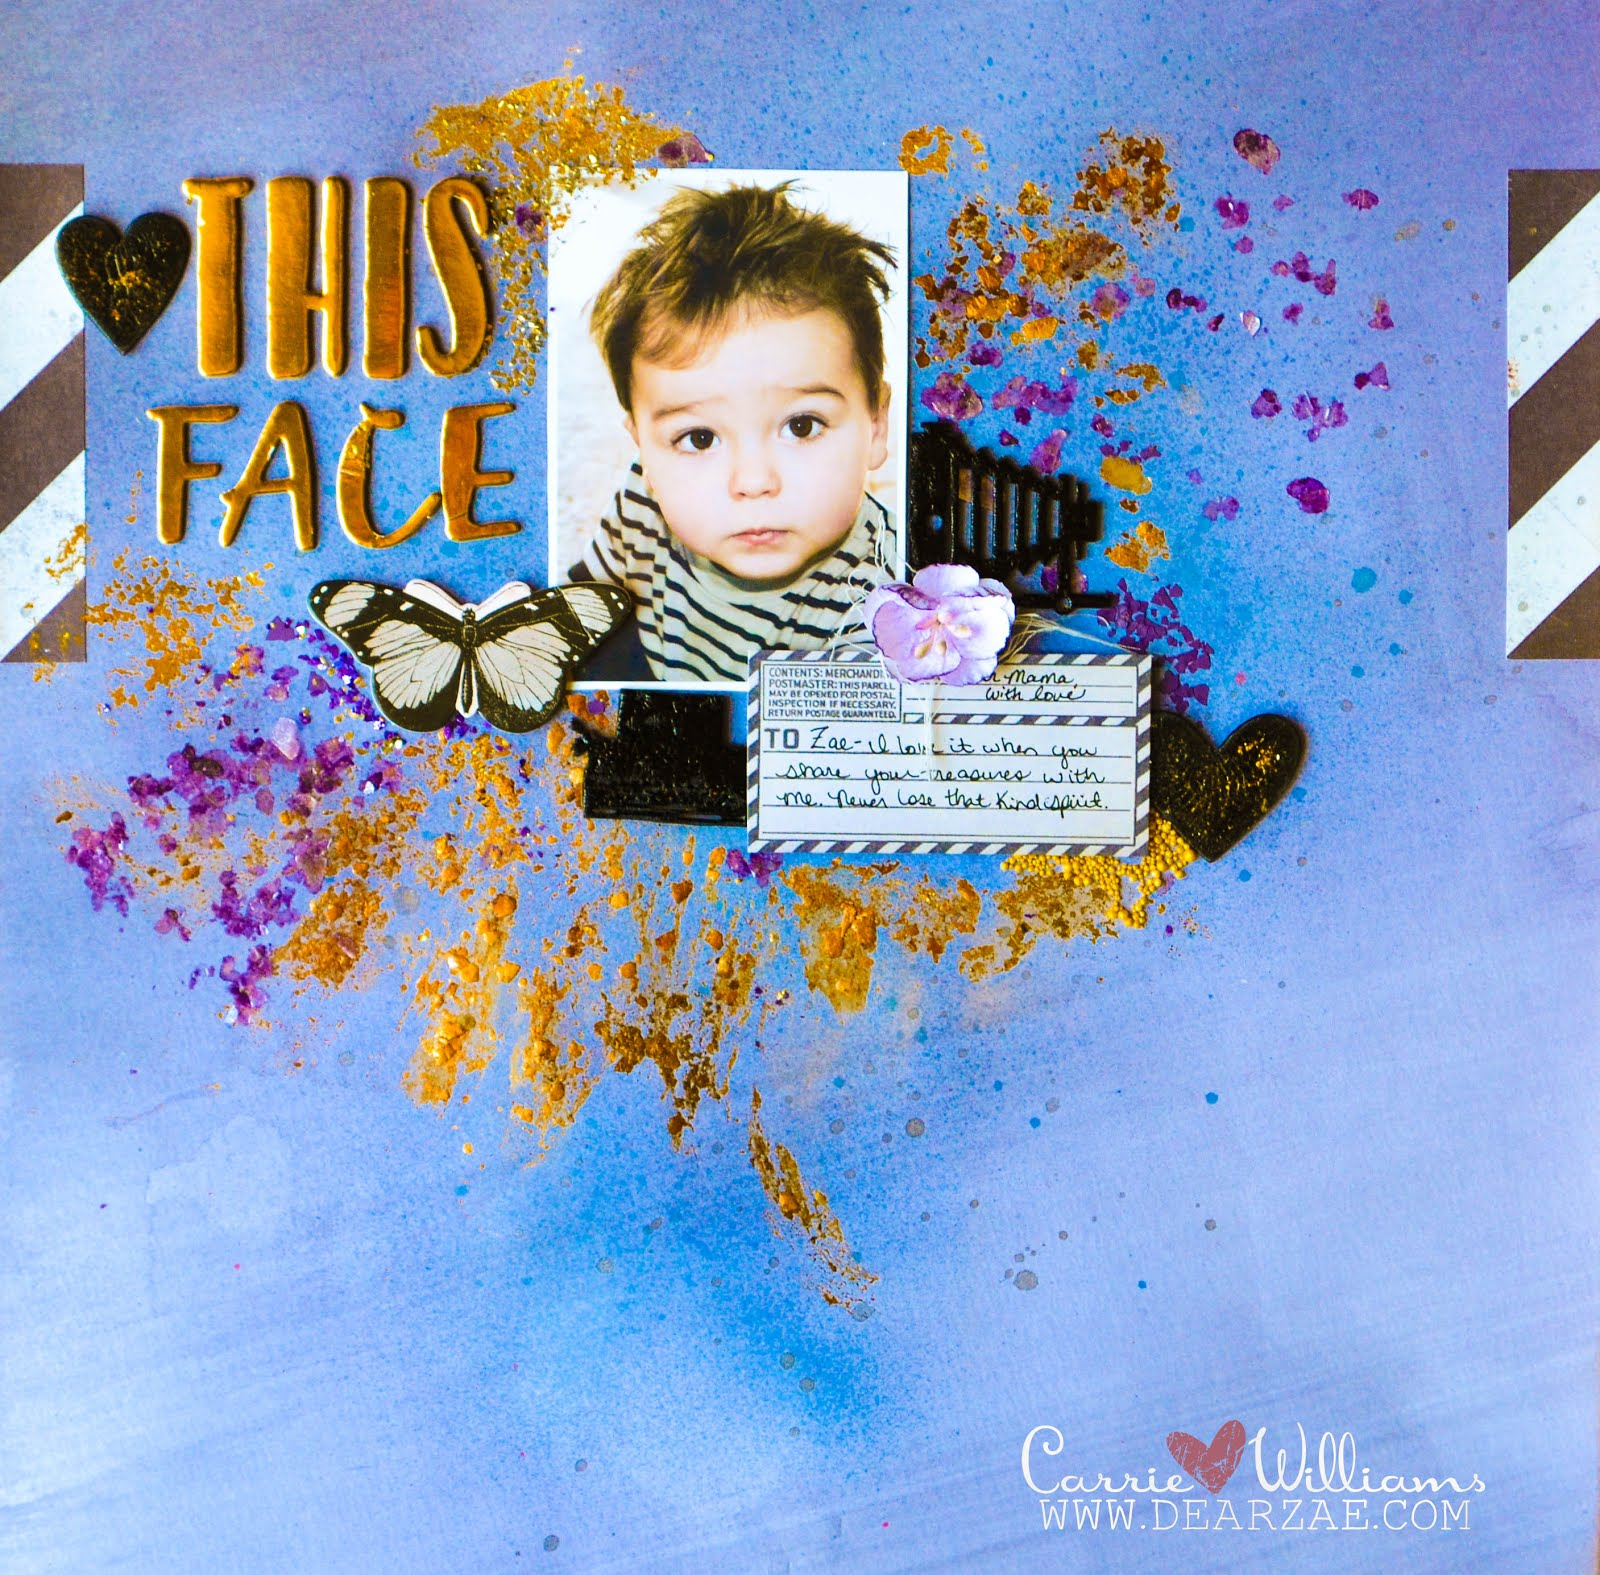 This Face: Scrapbook layout in purple, blue, gold, and black, with gold foil thickers, gold and purple mica, and mixed media glimmer sprays and pearlescent watercolors.